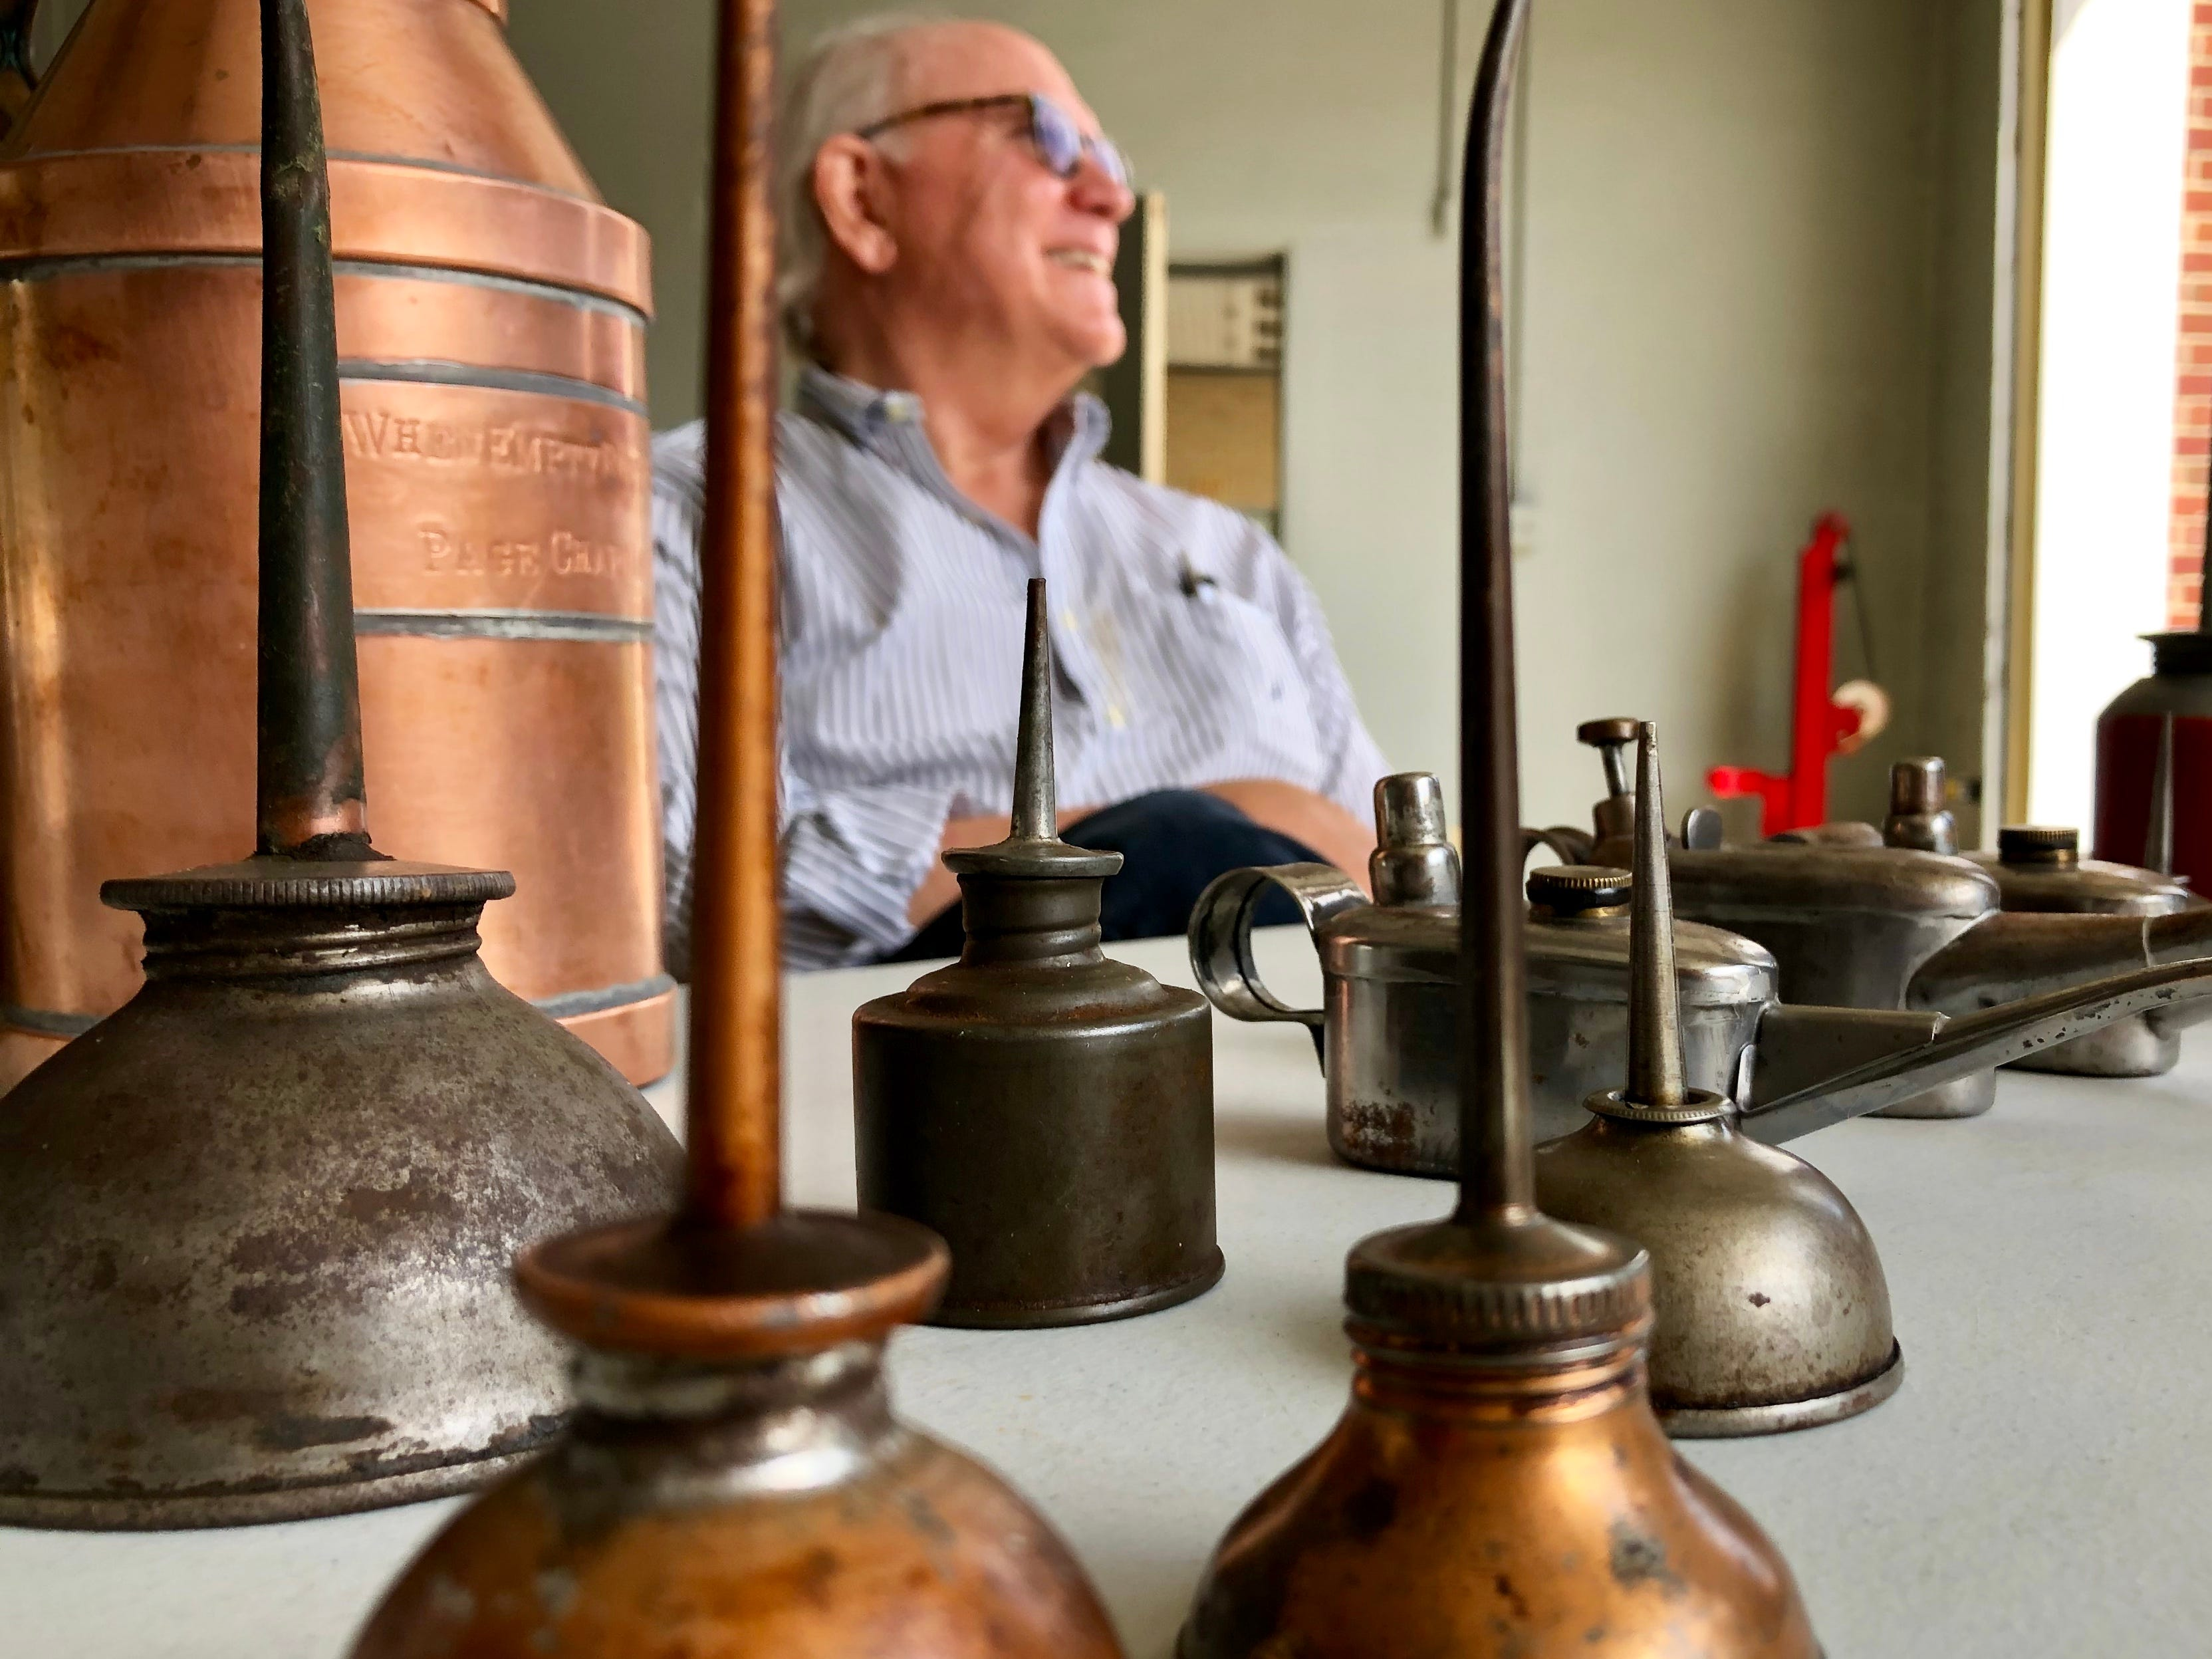 Jim Sharf displayed an impressive collection of vintage American-made oil cans at the Collectors Corner during the Princess Anne Street Fest.